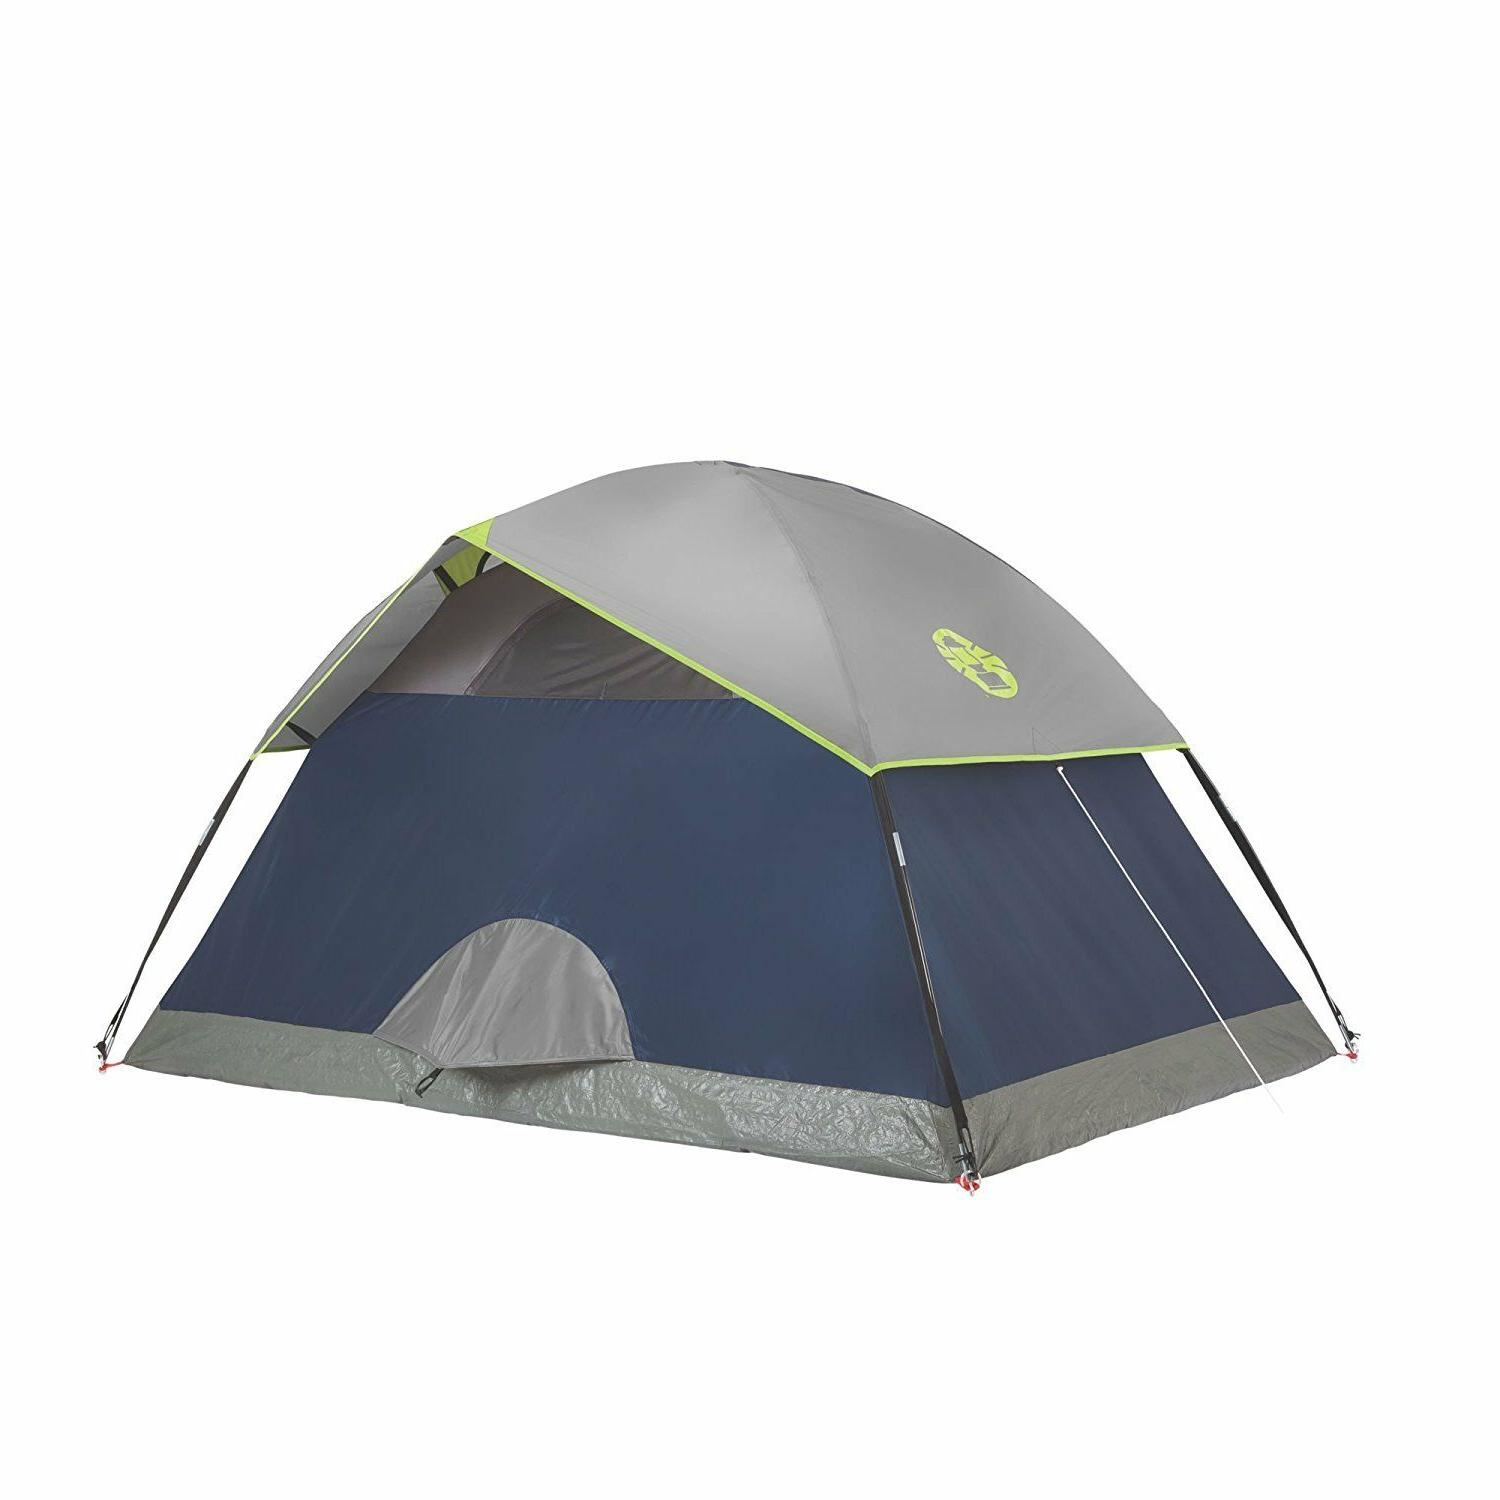 Coleman 4 Person Sundome Tent Made in USA Polyester Camping Fishing Hunting Tent